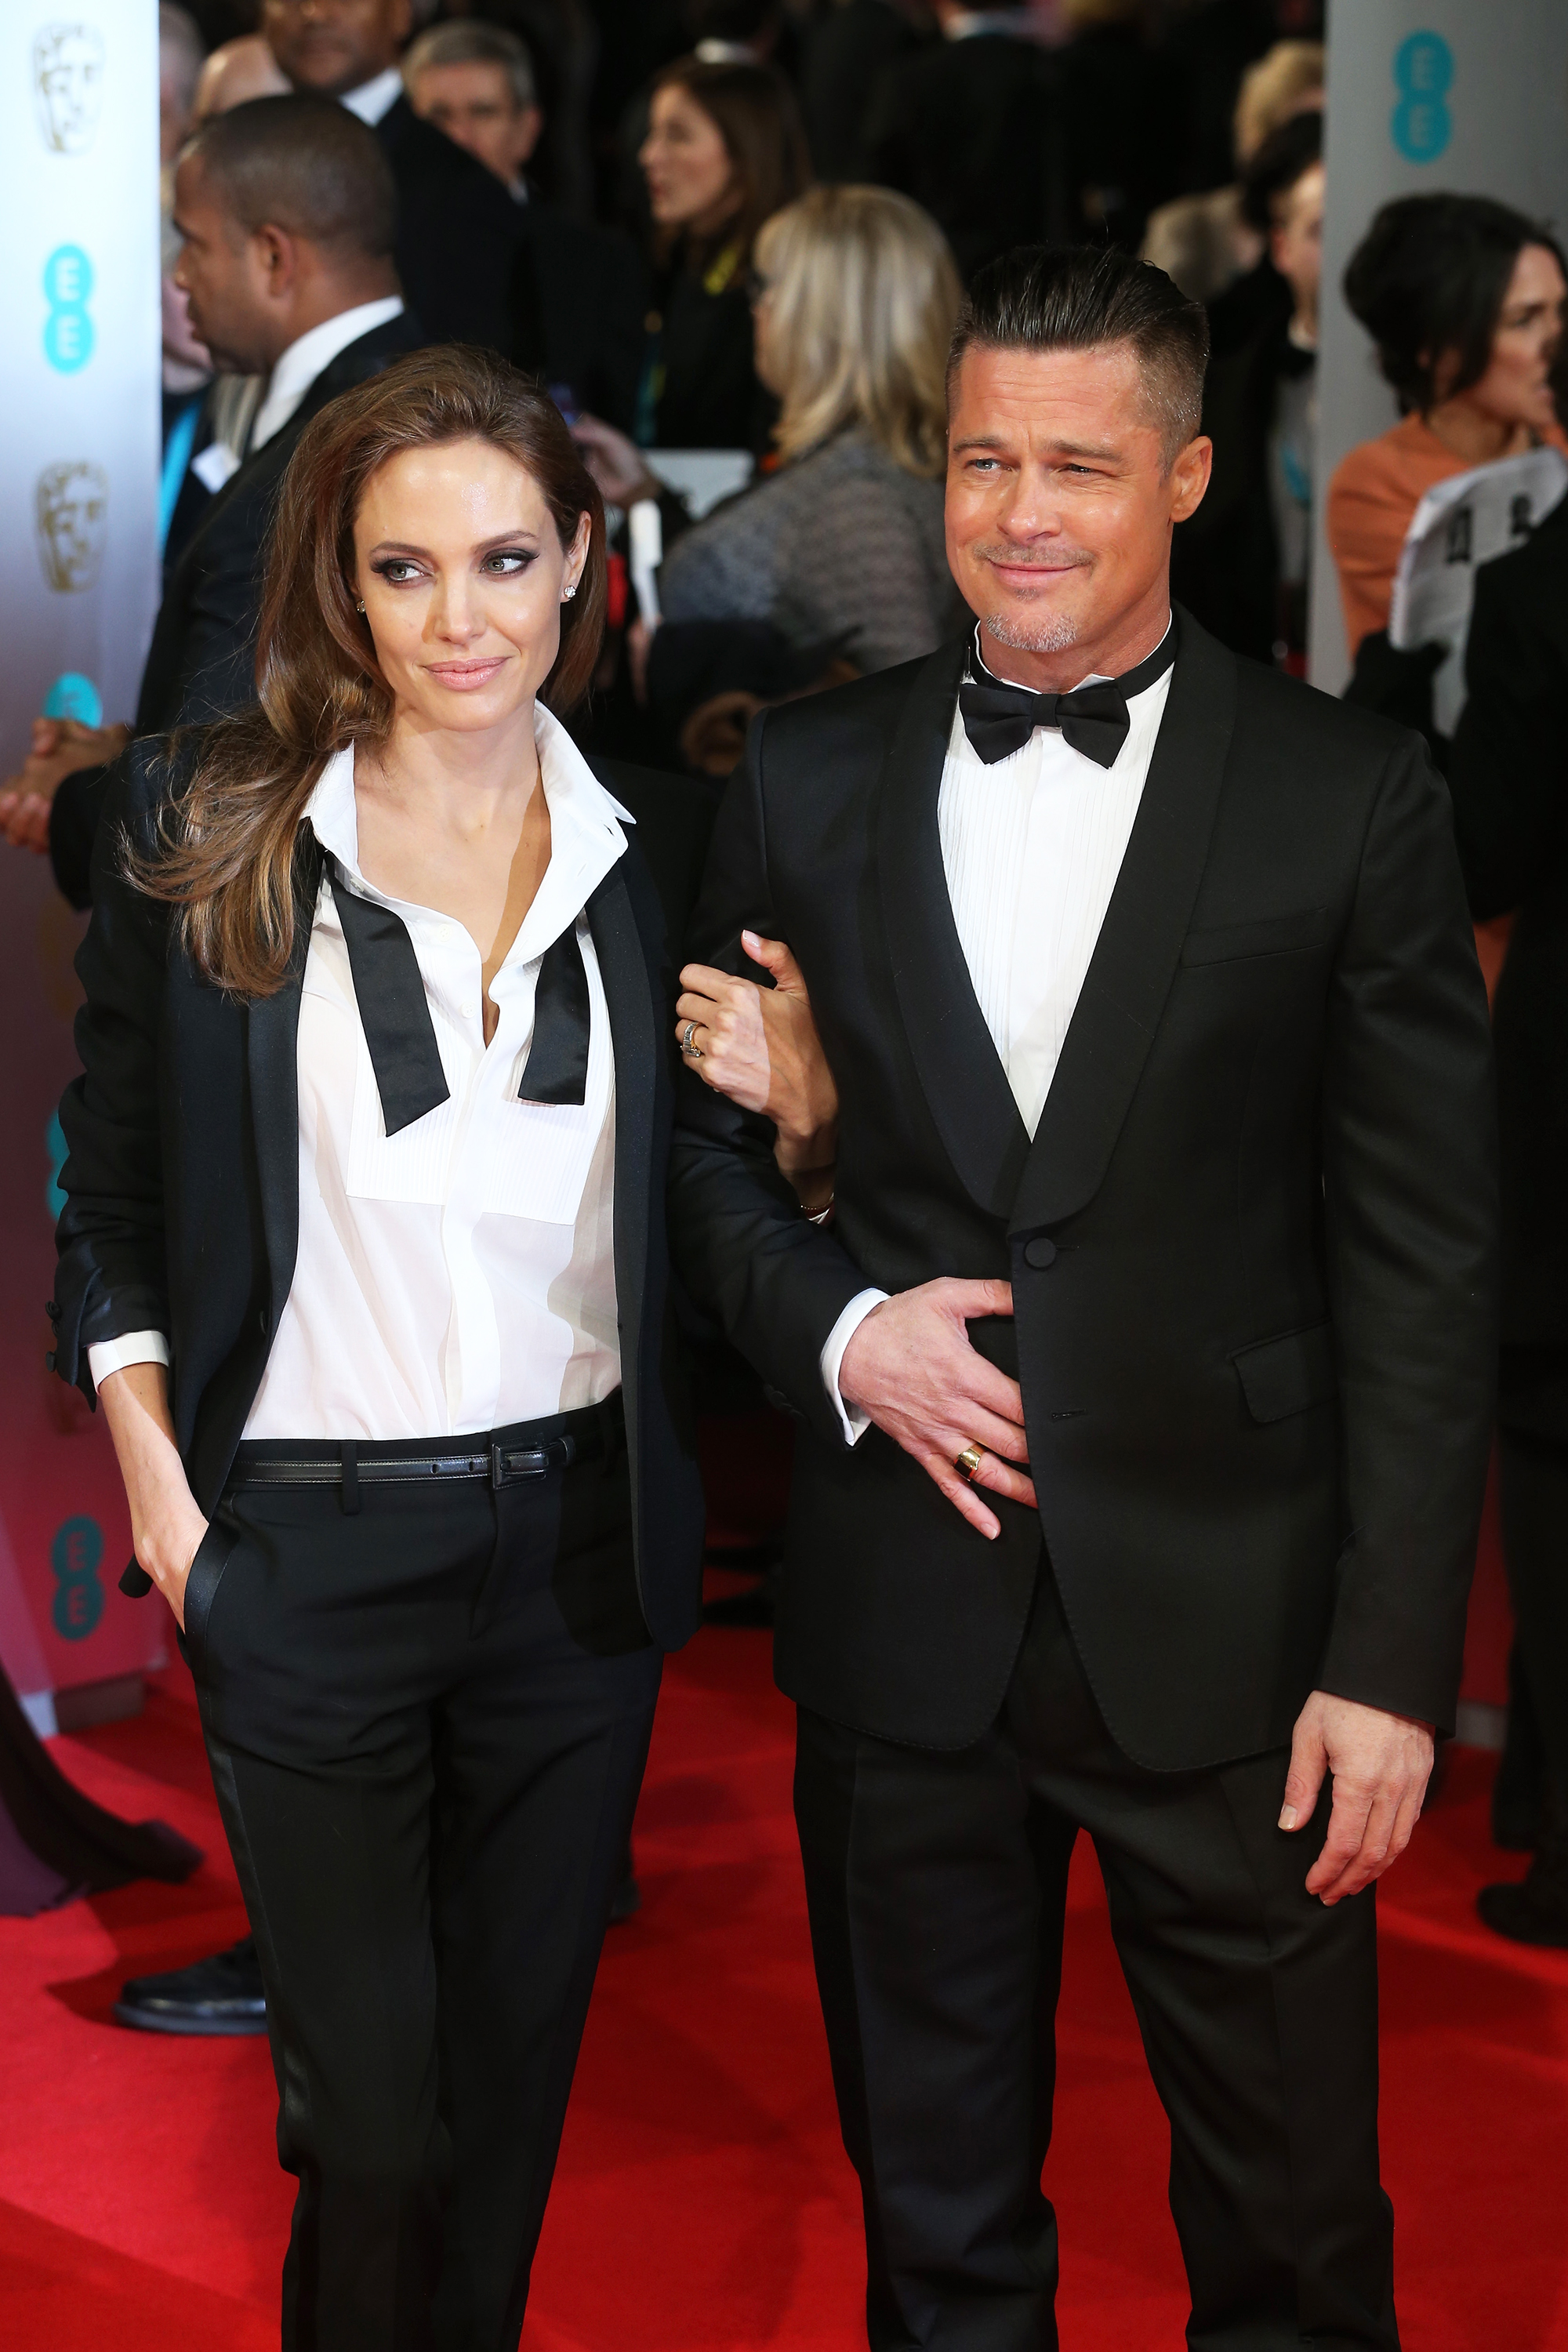 Angelina Jolie and Brad Pitt  at the British Film Awards on Feb. 16, 2014 in London.